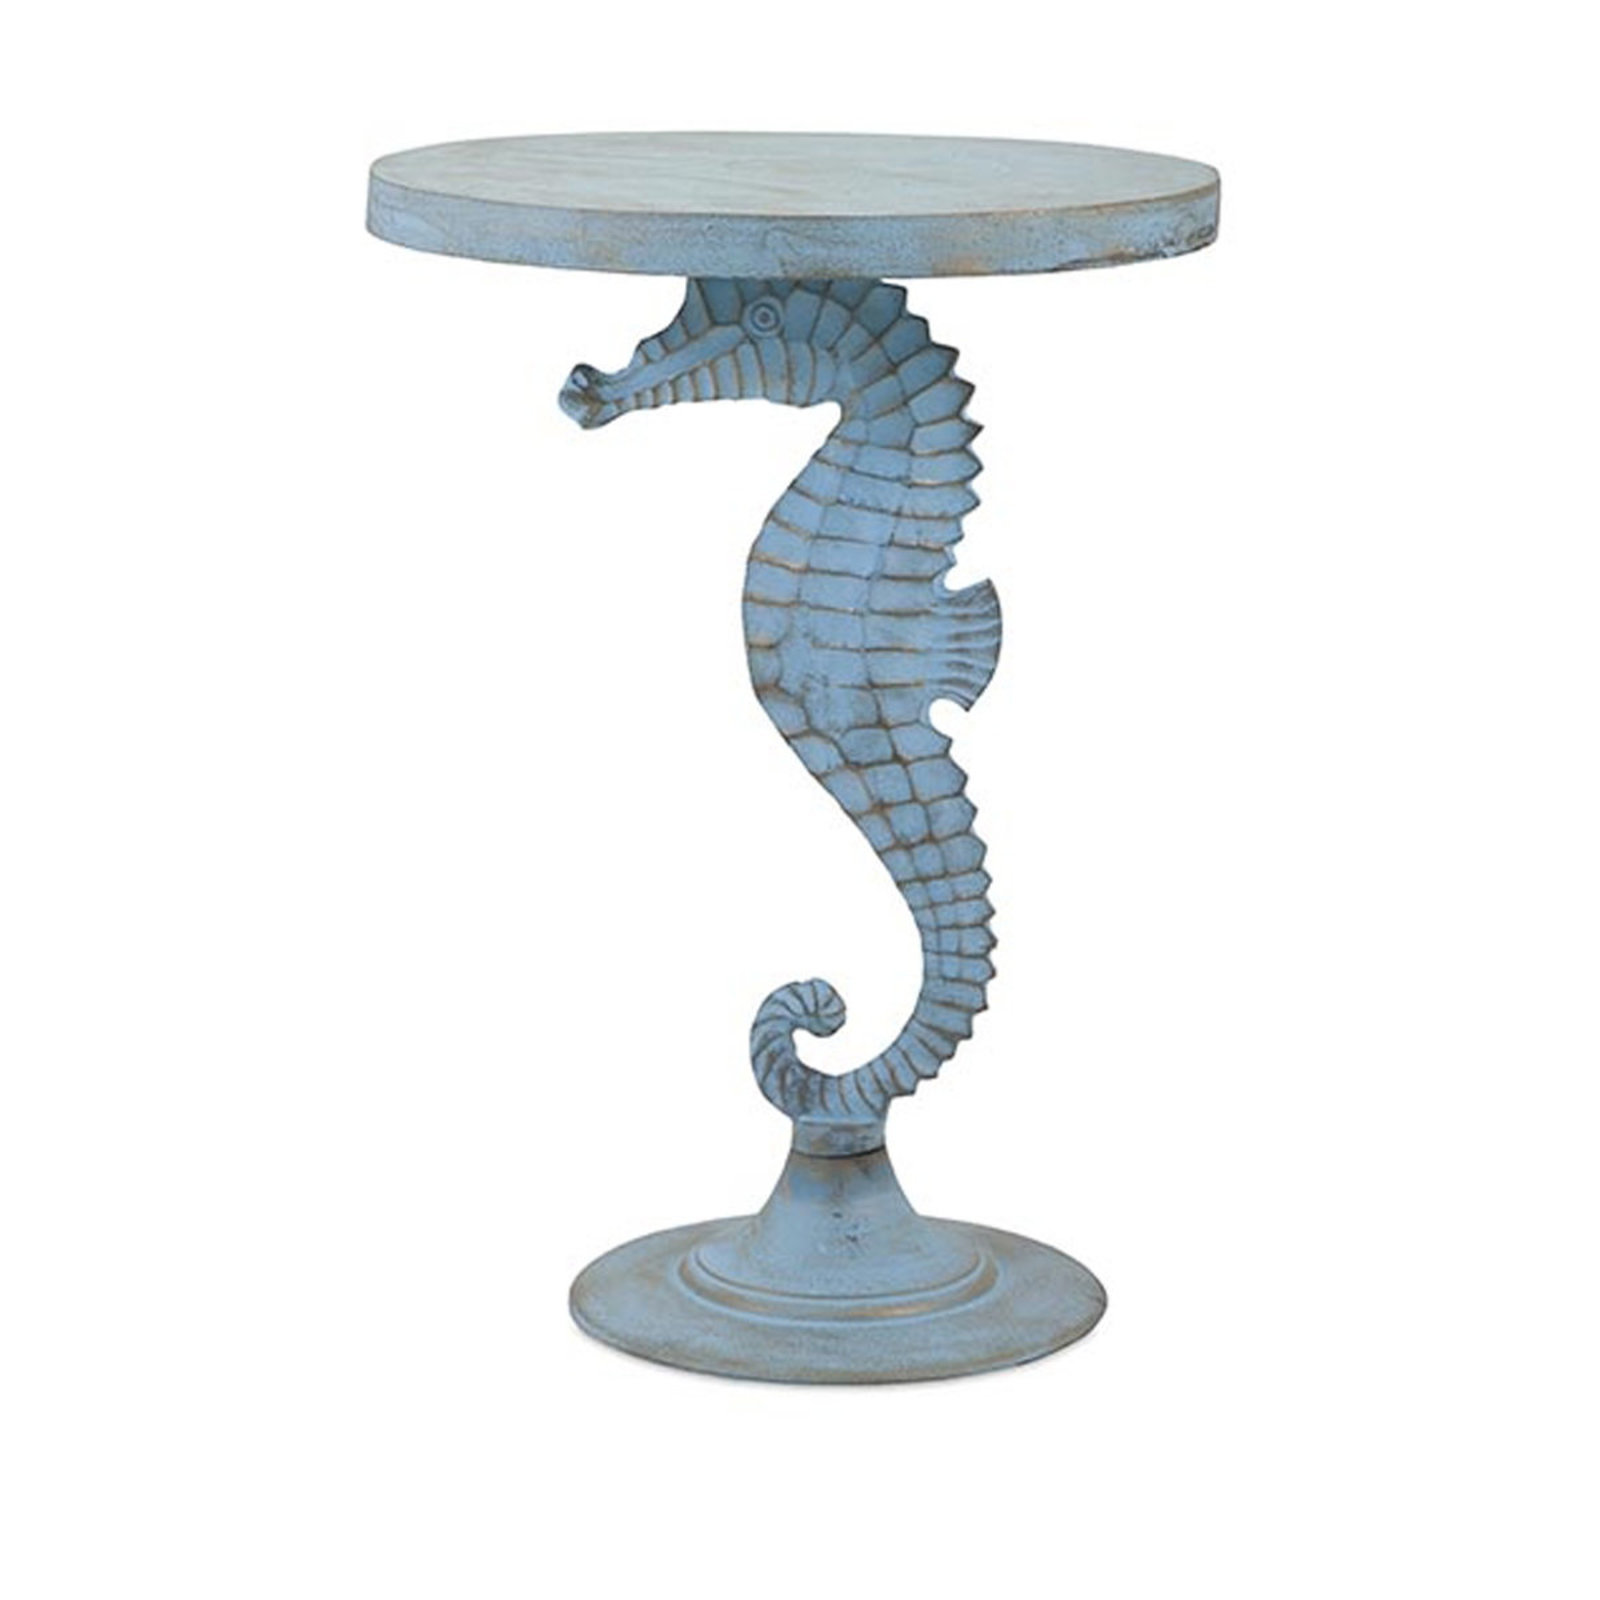 coffee tables side shades light weathered coastal seahorse accent table galvanized metal mirrored bedside furniture modern outdoor nic legs rectangular nest nautical desk lamp